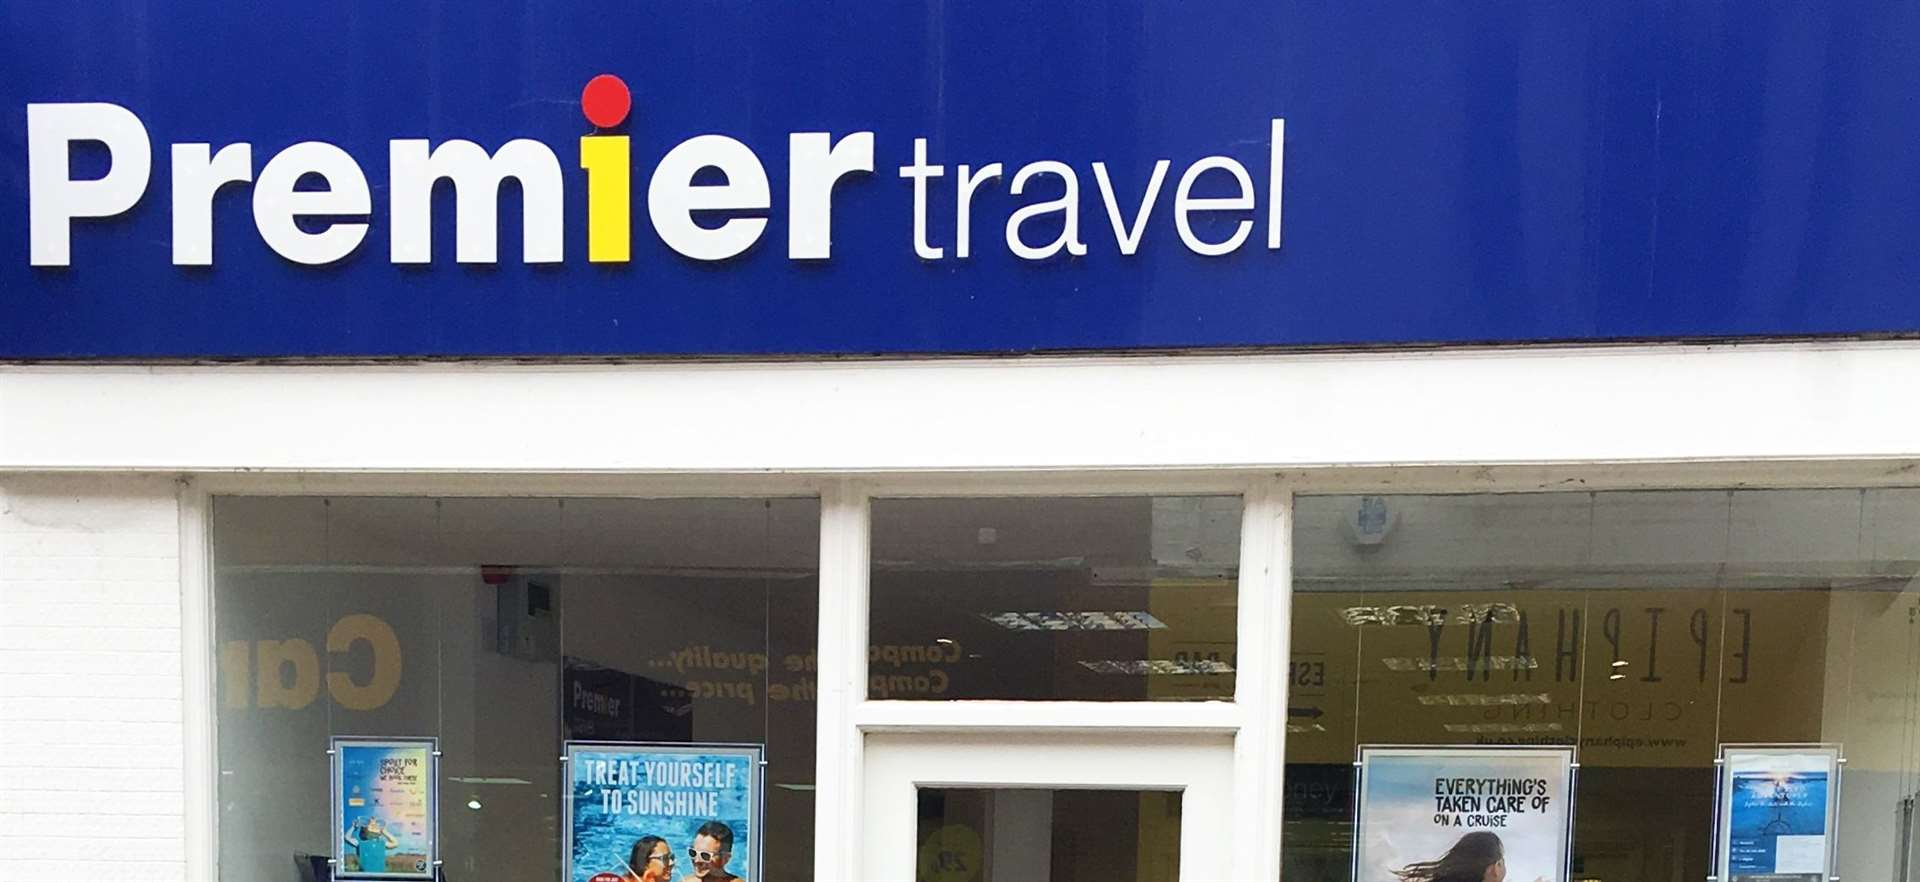 Premier Travel shops are now open again for appointments